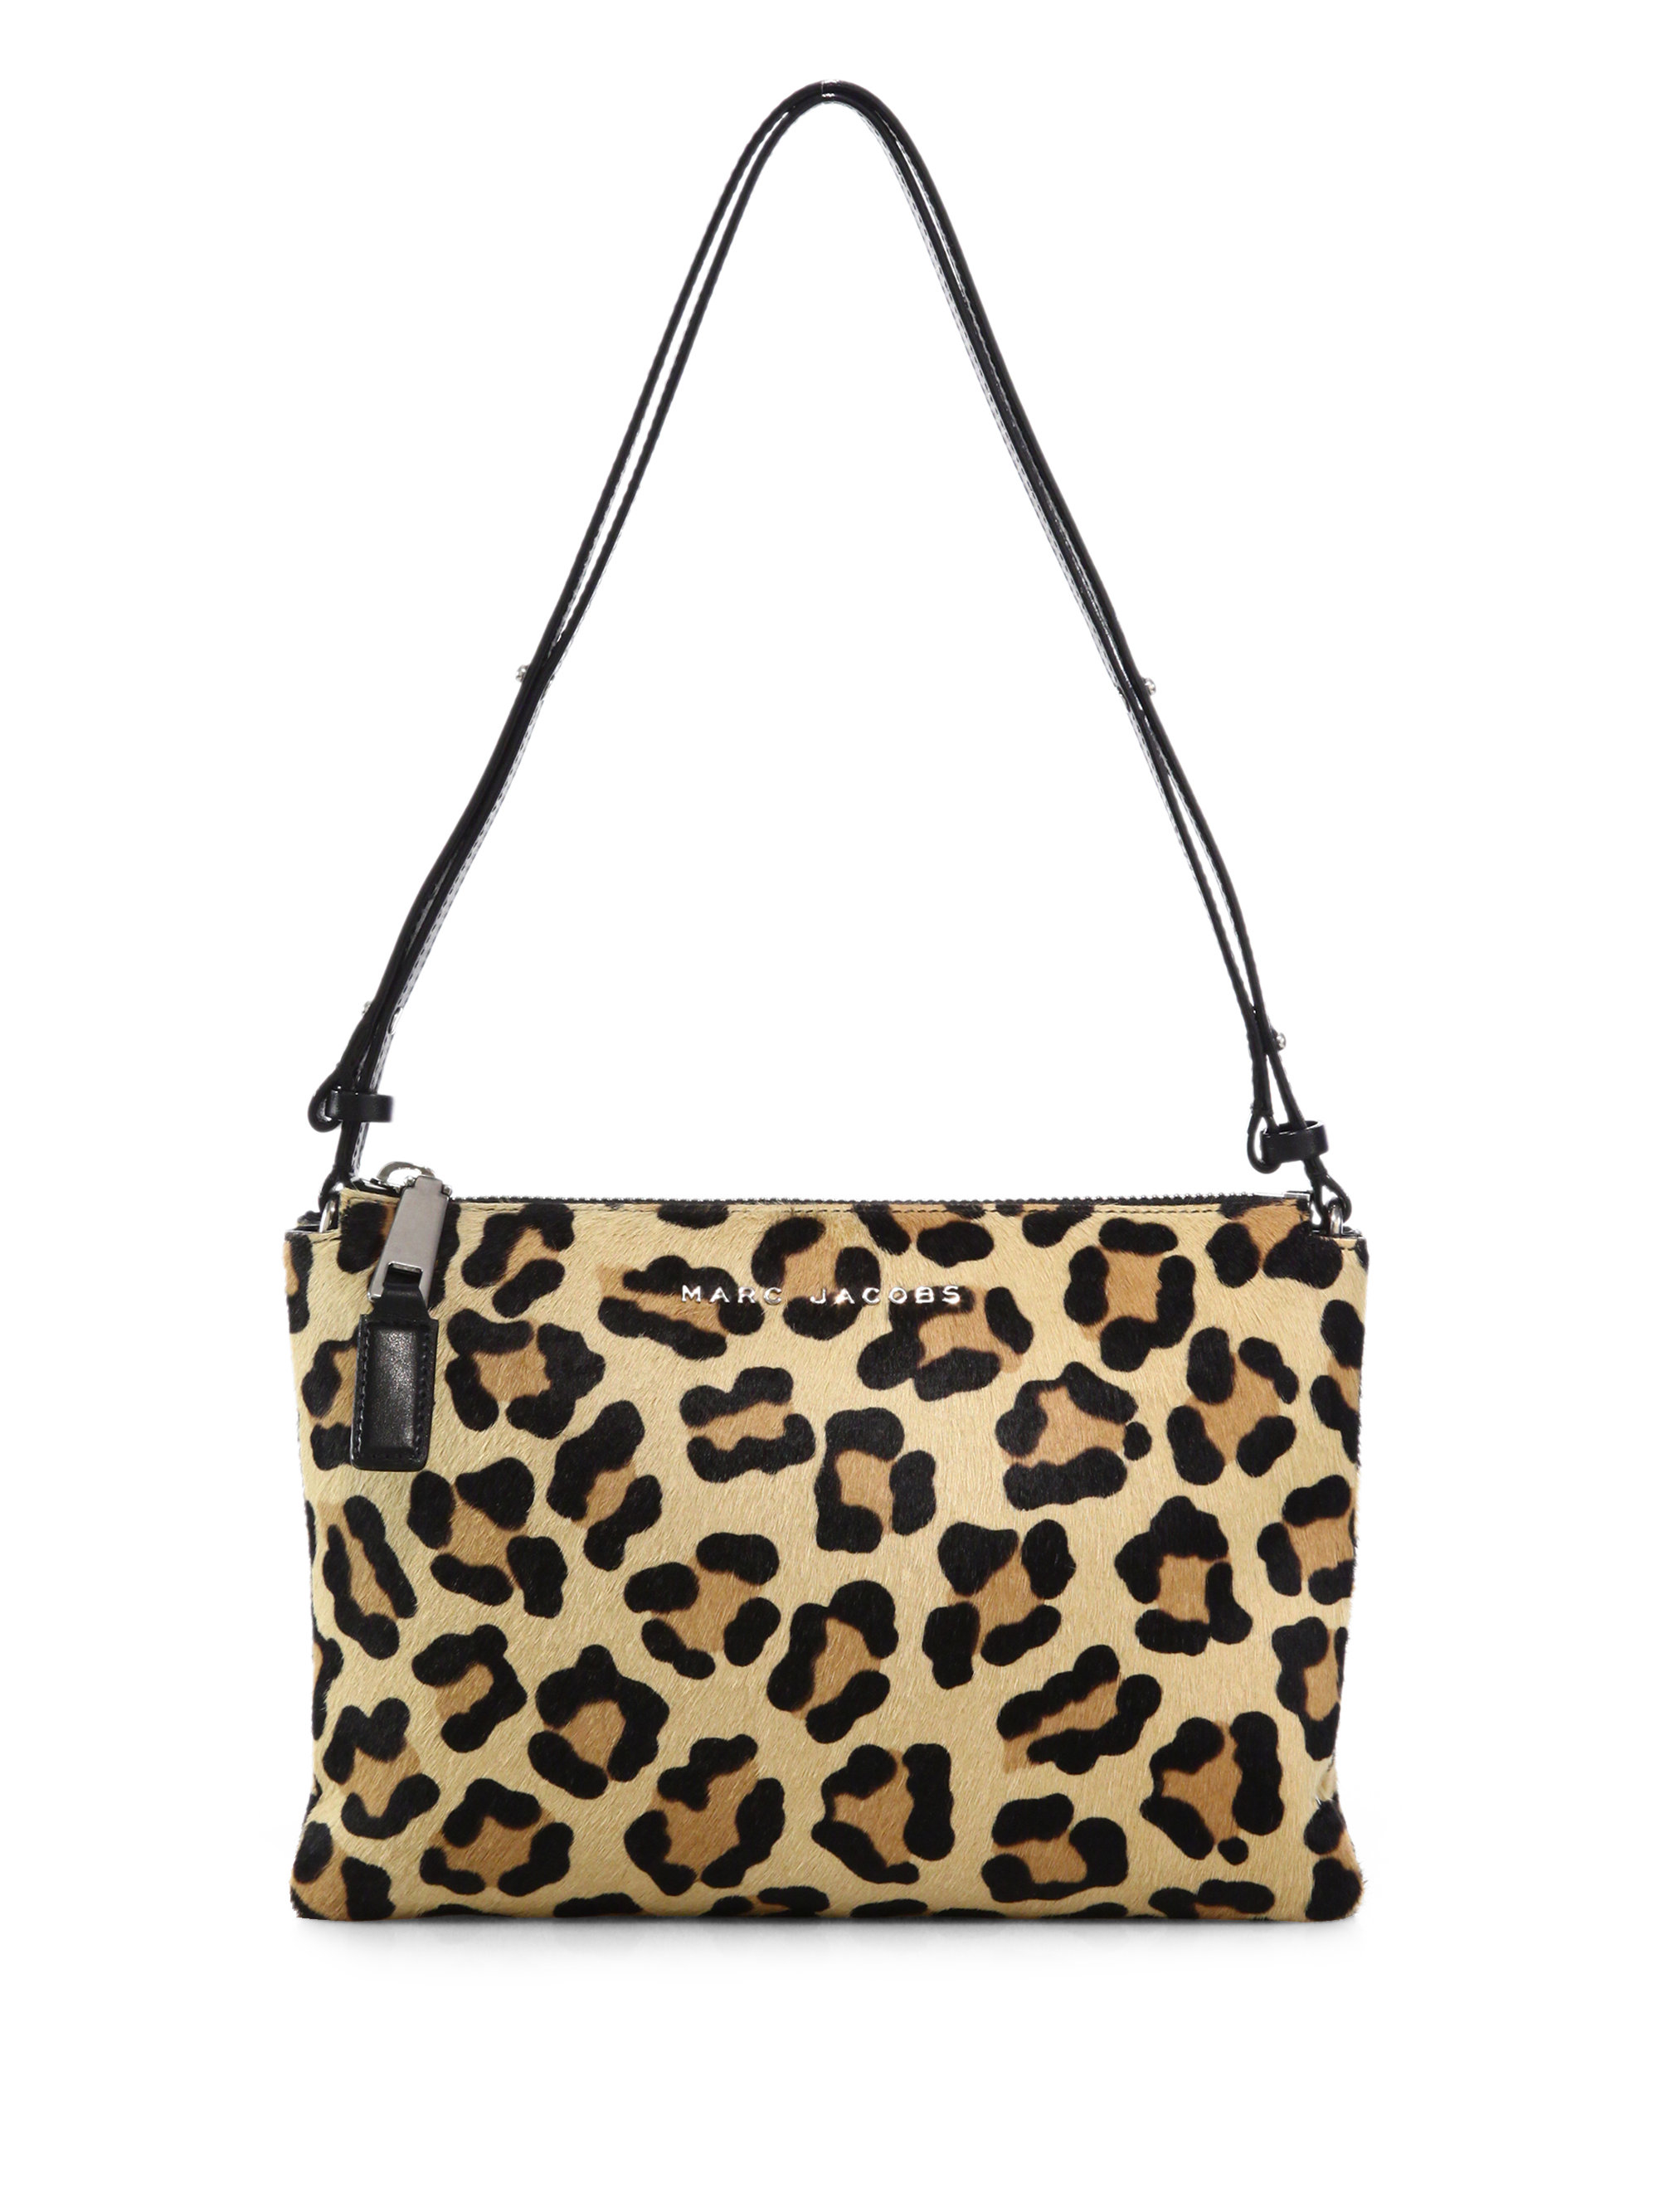 ad9785426d4 Wonderful Lyst - Marc Jacobs Double-pouch Leopard-print Calf Hair Crossbody  Bag SC63